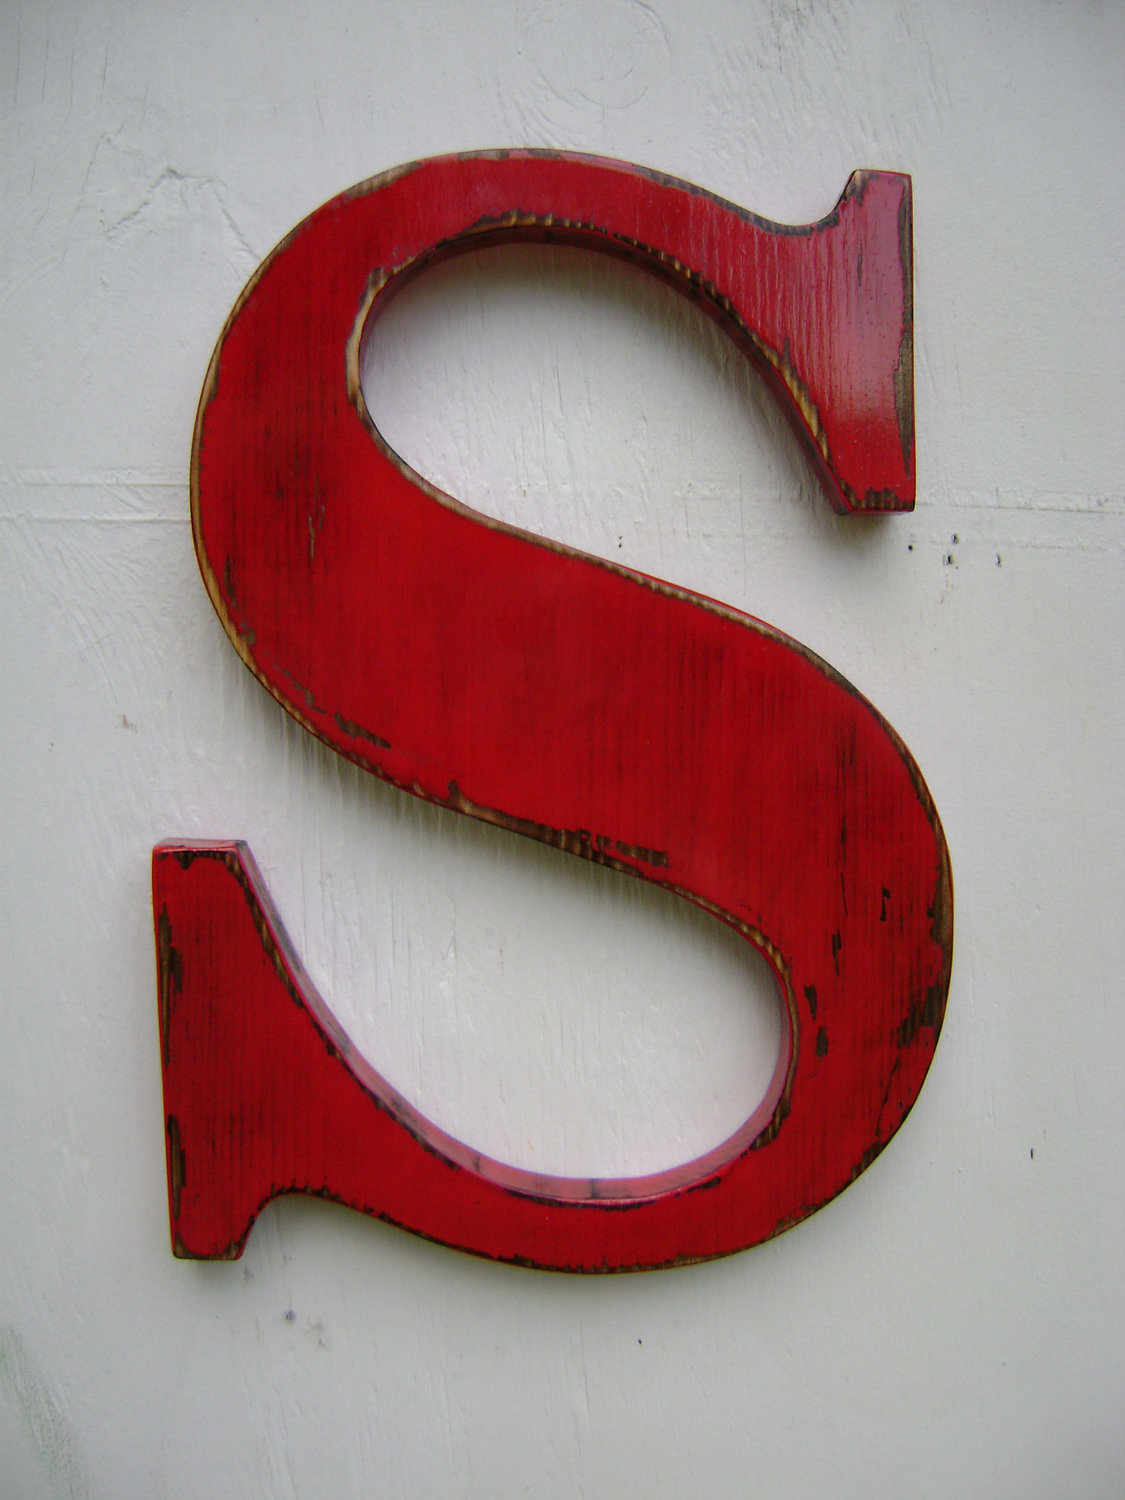 wooden letter s rustic shabby chic letterdistressed painted tru red12 tall